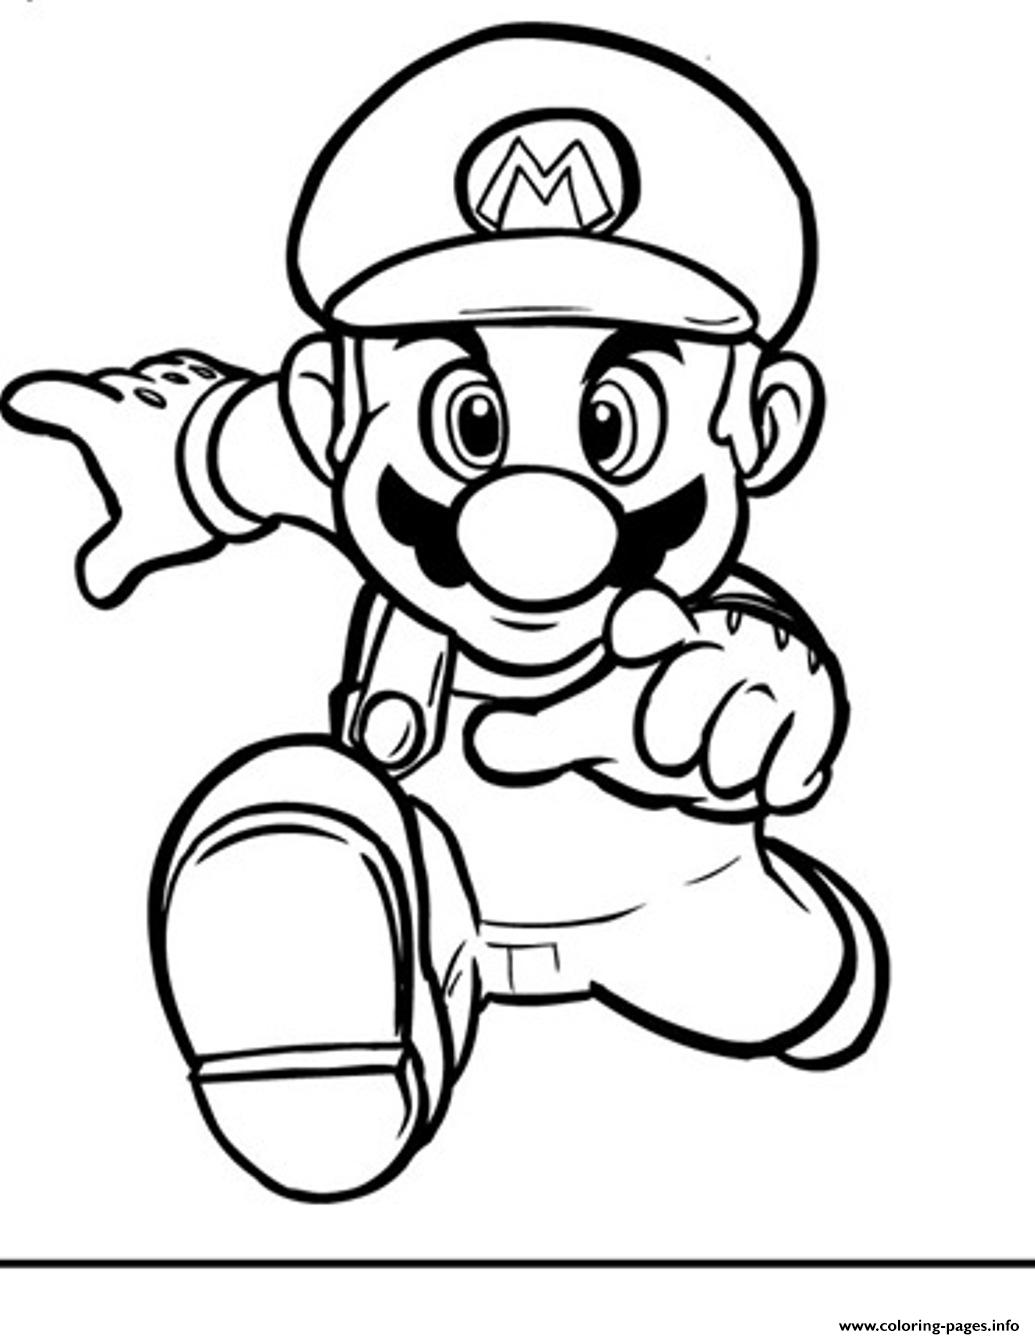 running mario bros s2394 coloring pages printable